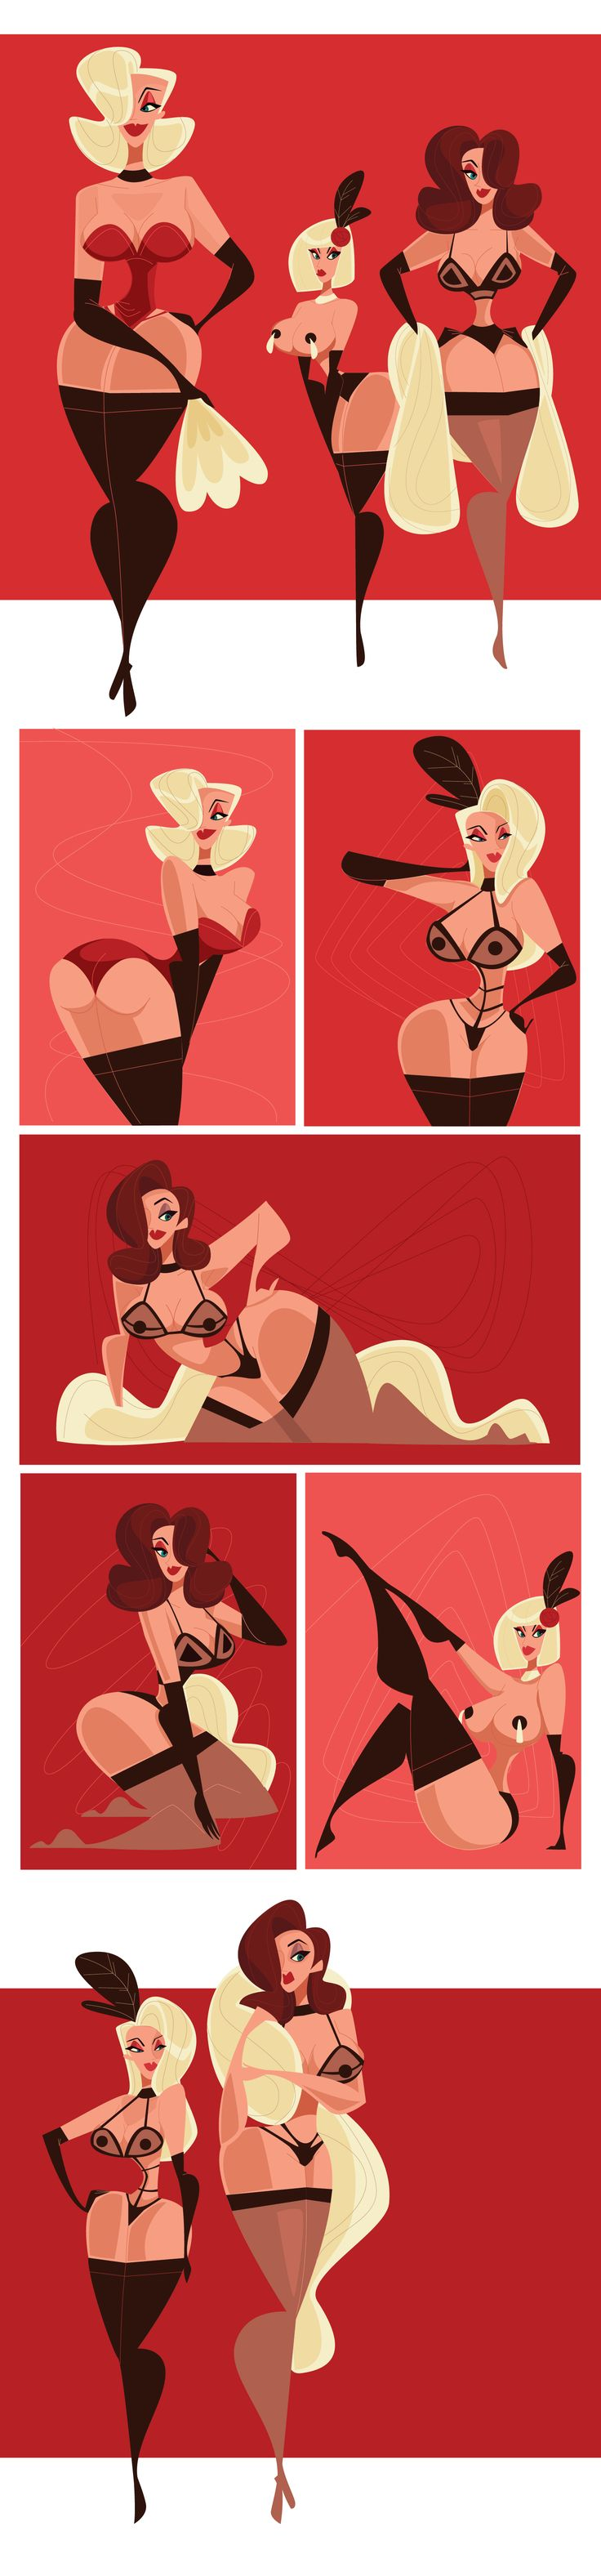 "Consulta este proyecto @Behance: ""Burlesque"" https://www.behance.net/gallery/34424113/Burlesque"